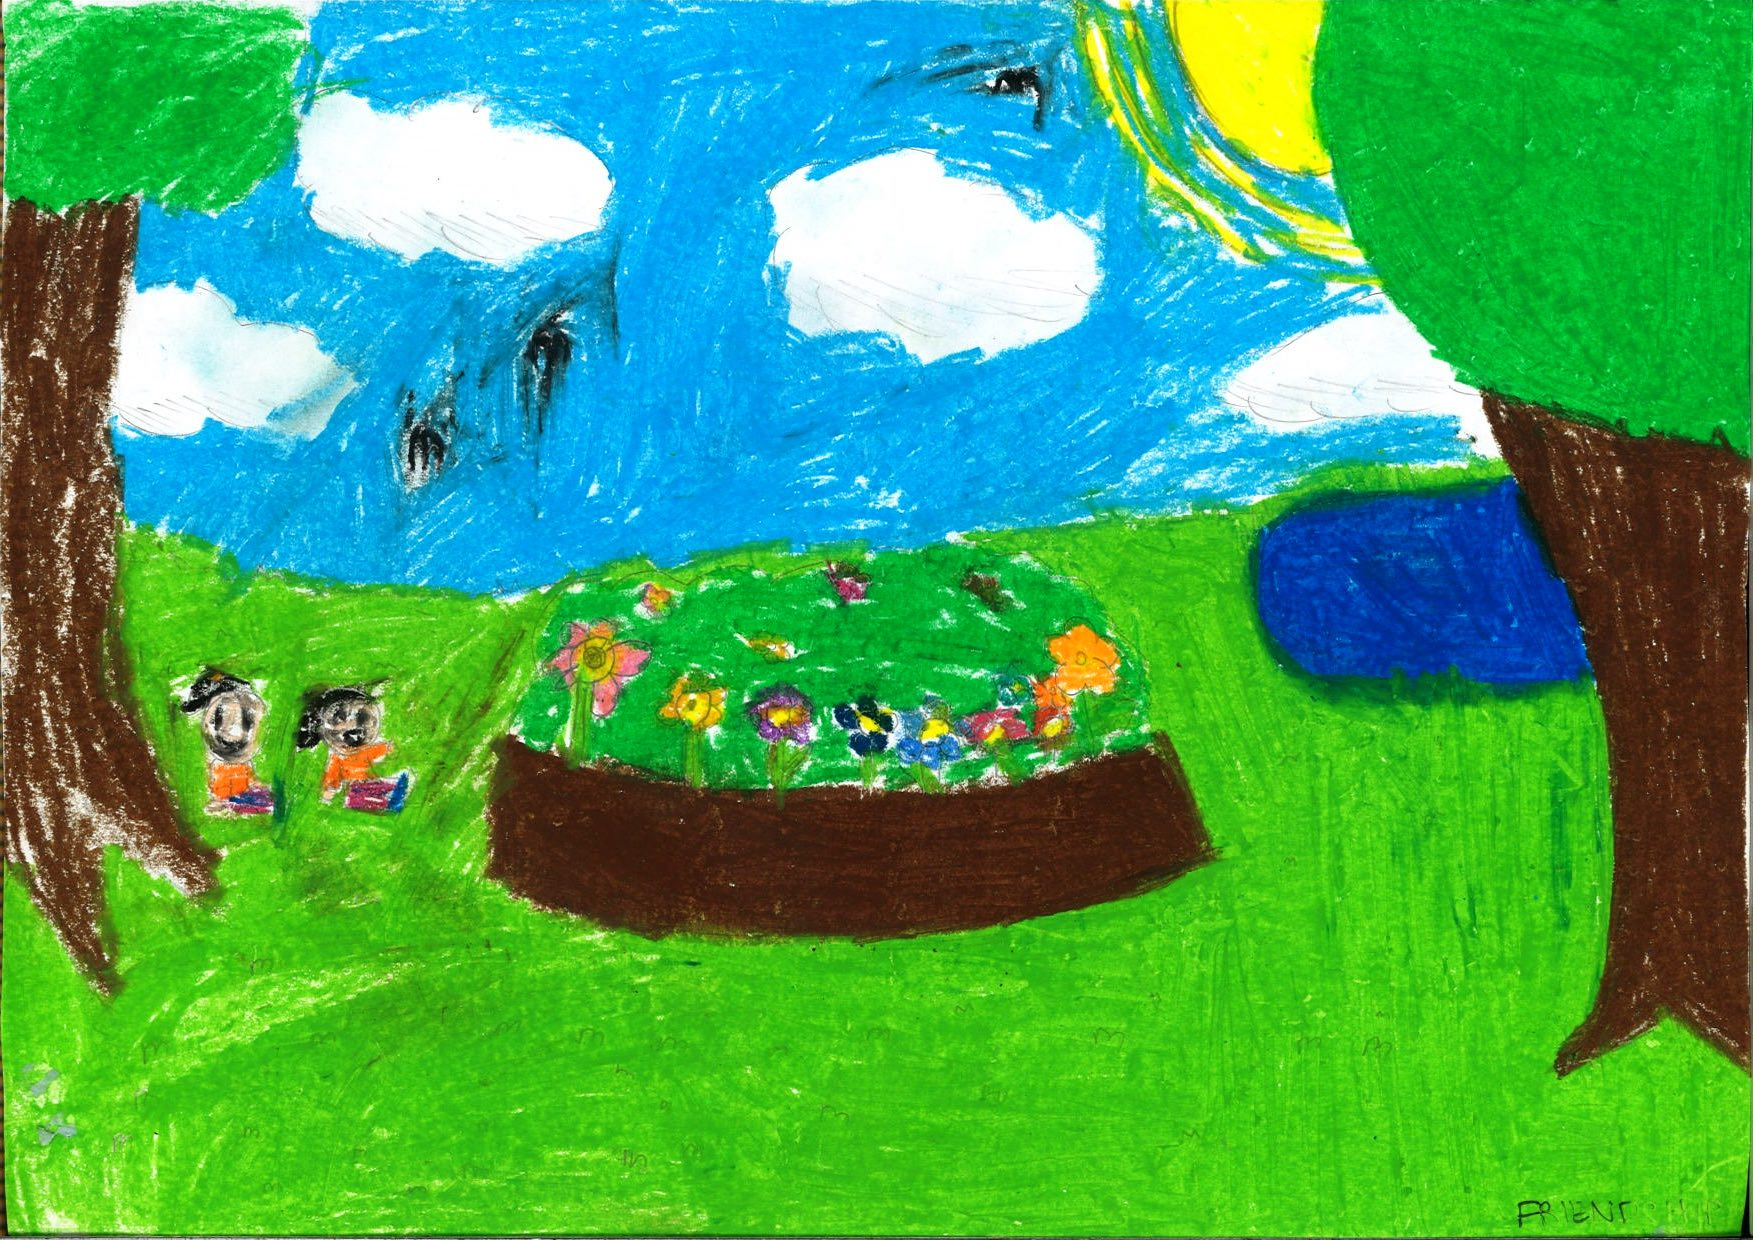 Working together, the two children use oil pastels to construct a vibrant scene of a day out in the park. The smiling faces of the two individuals, and the brightness of the colours selected, work to convey the feelings of happiness associated with friendship.